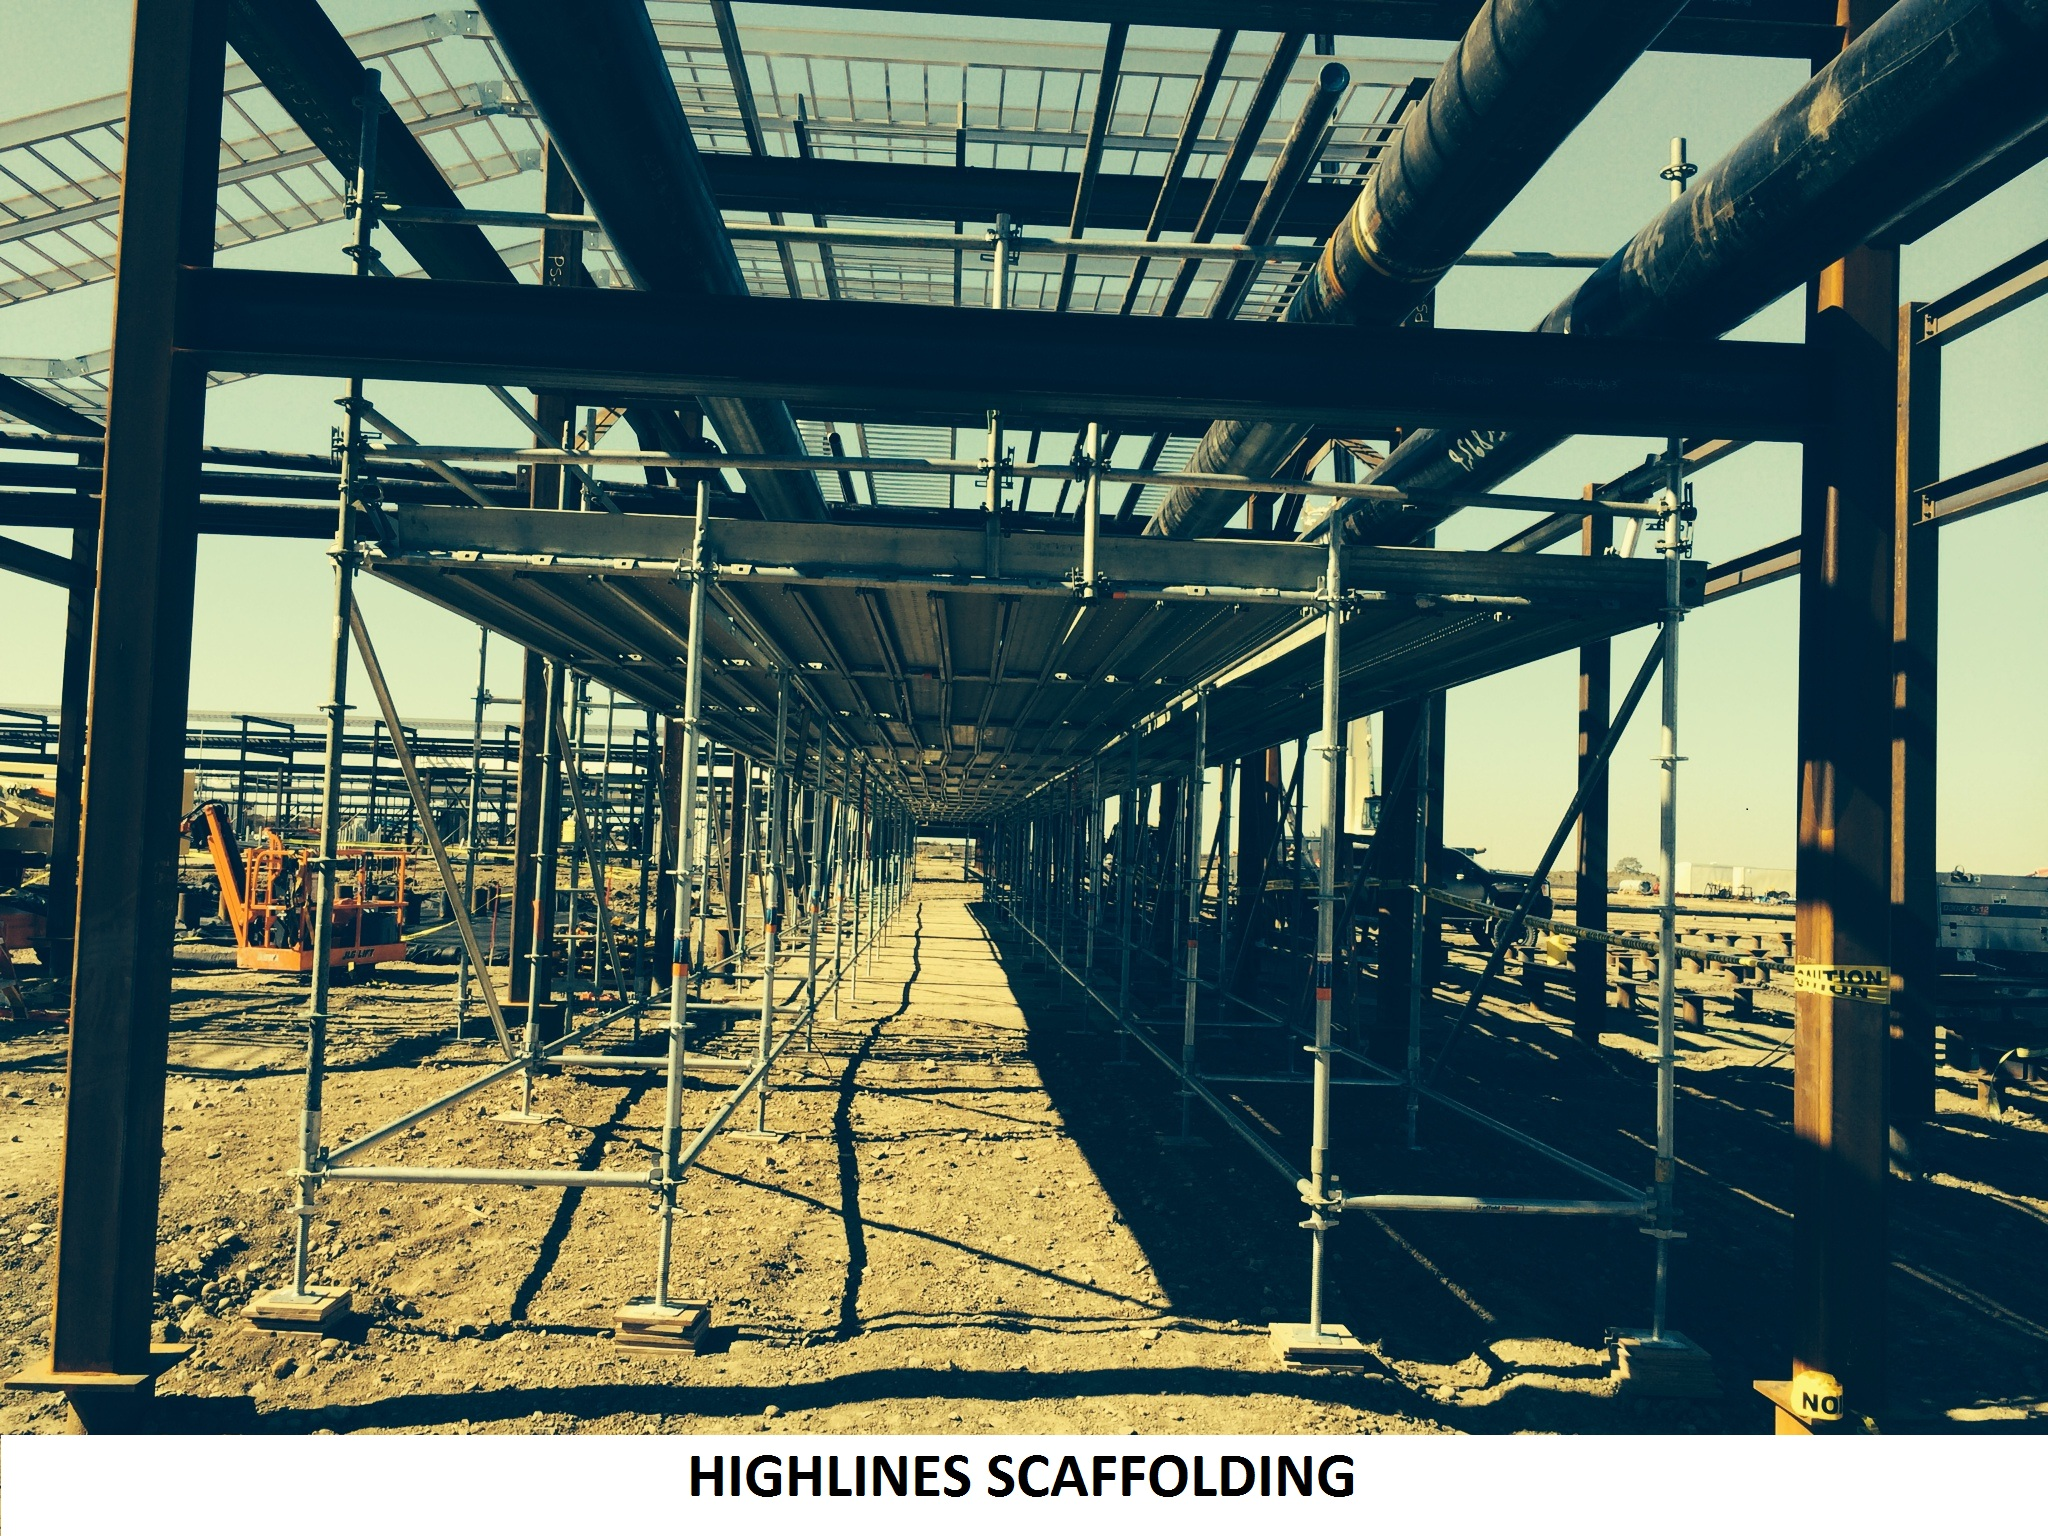 Scaffolding for highlines 2